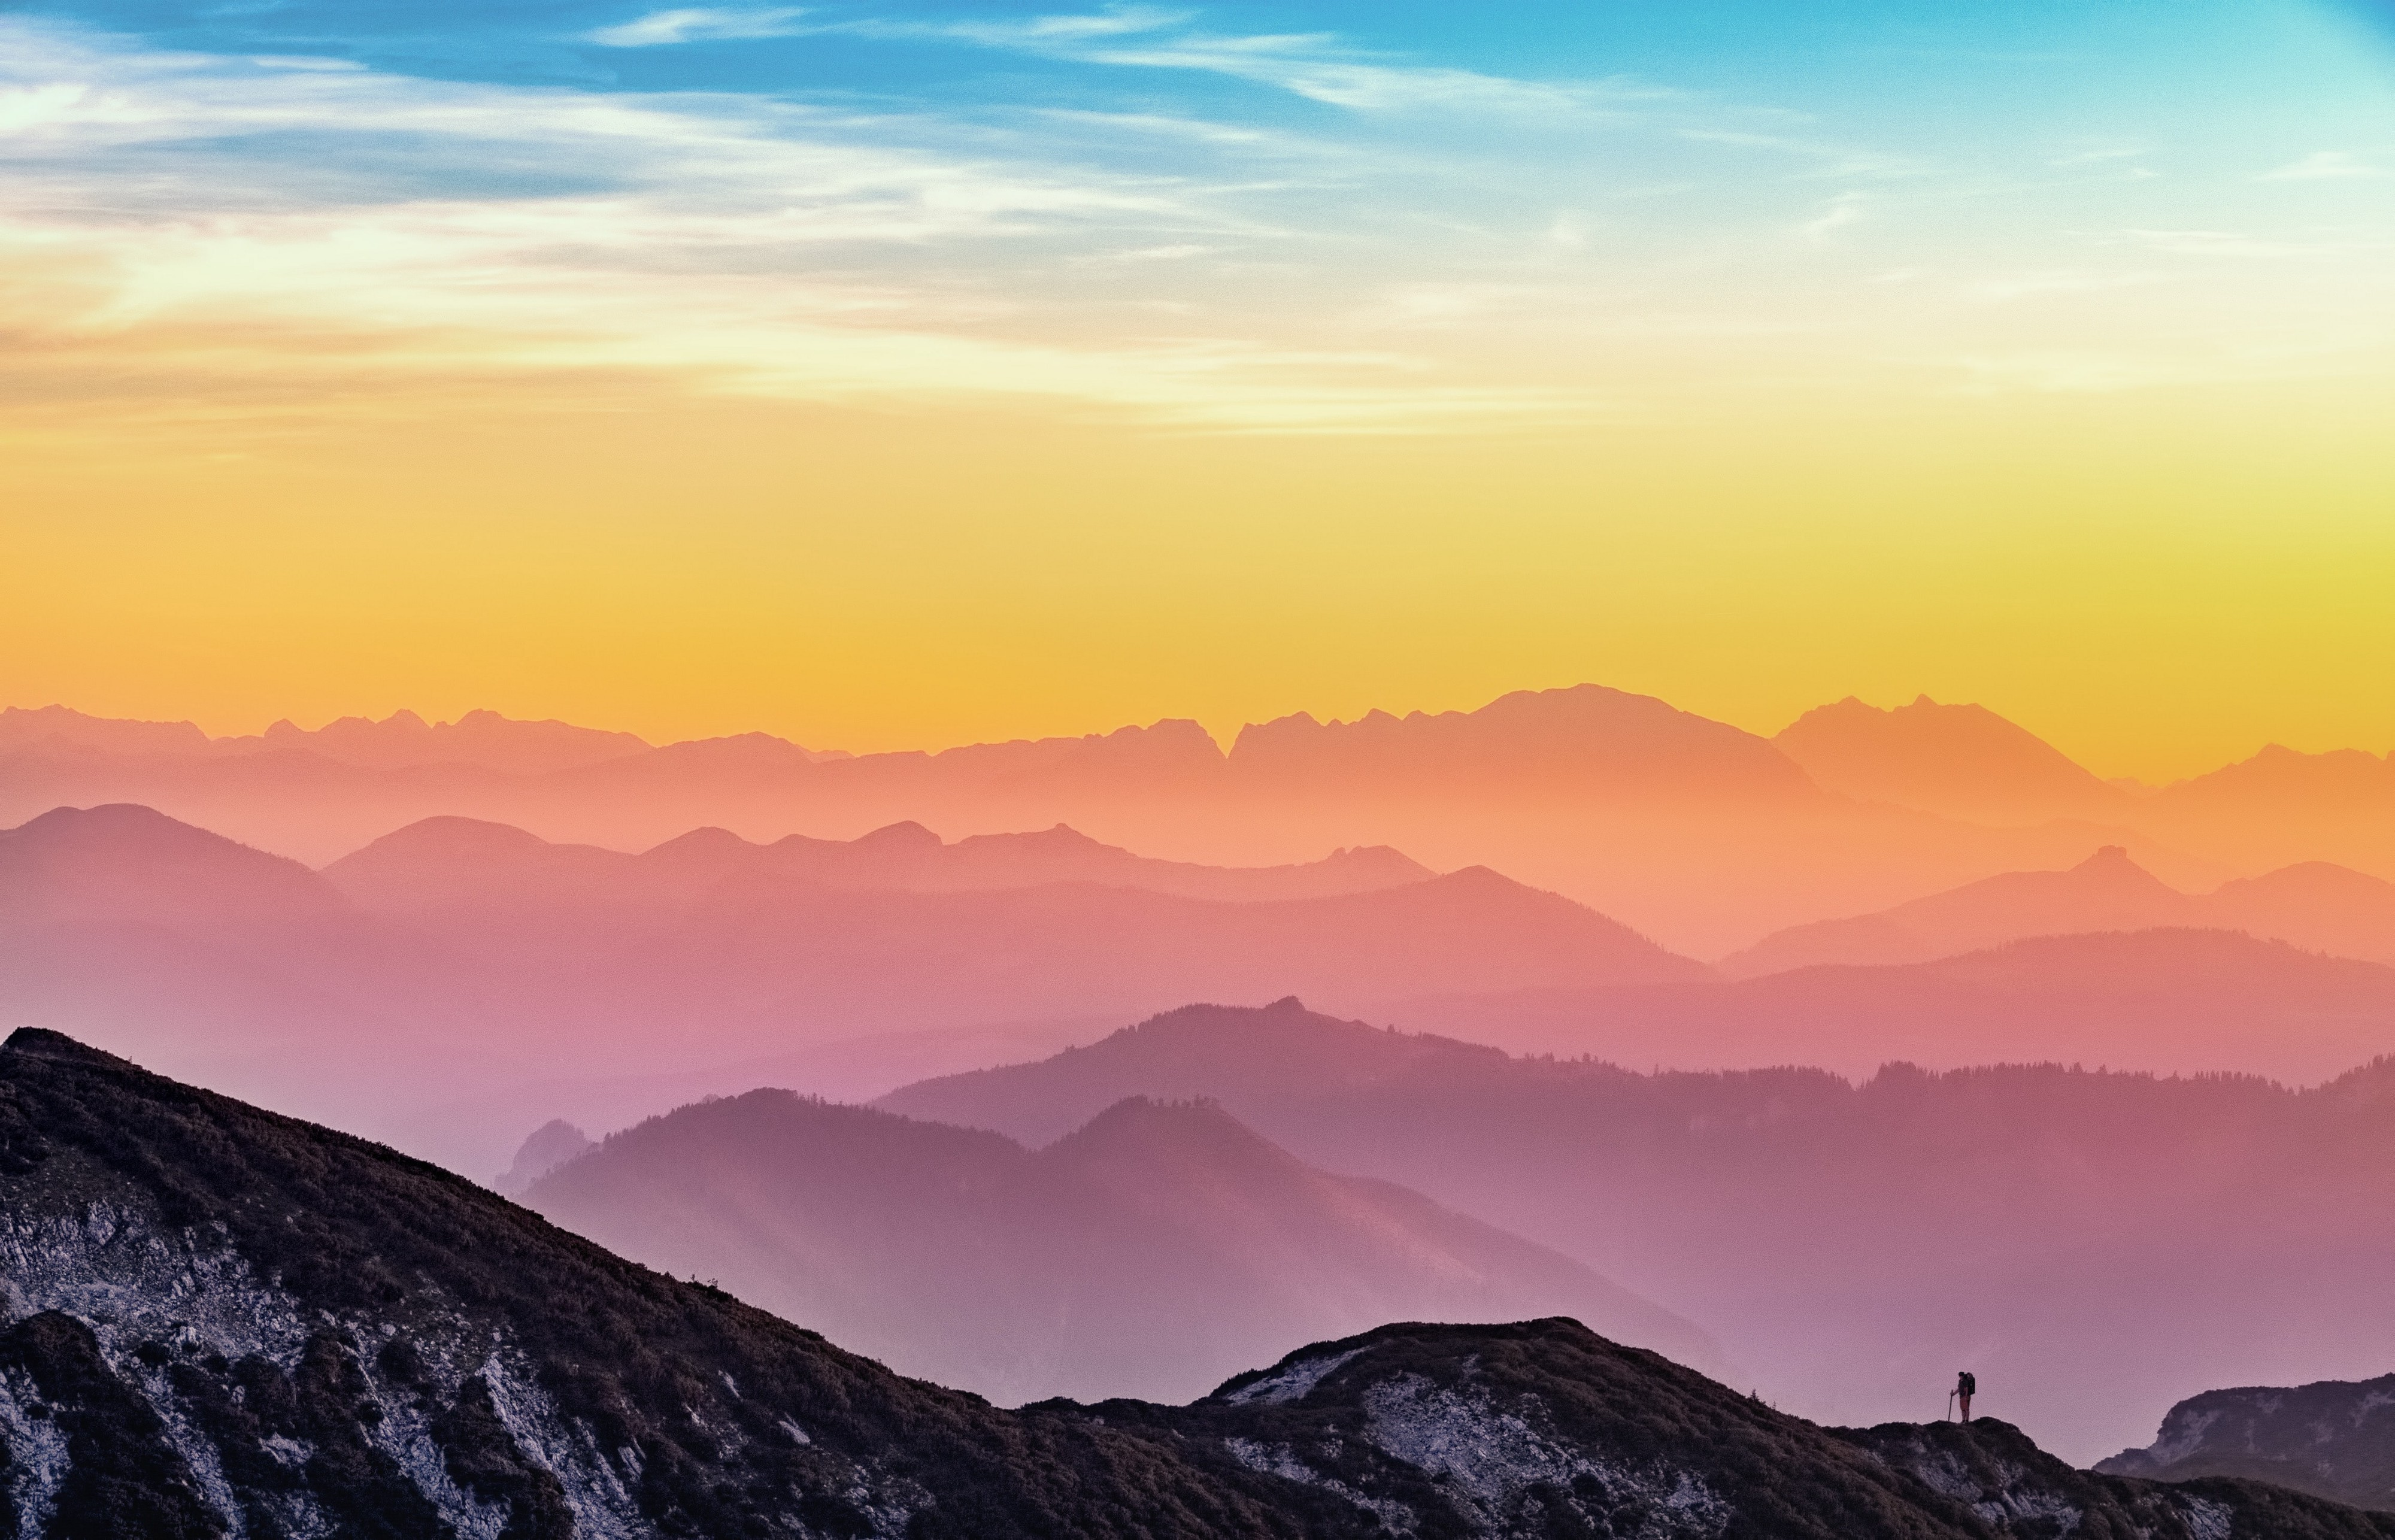 Man standing on top of mountain with colorful sunset behind.